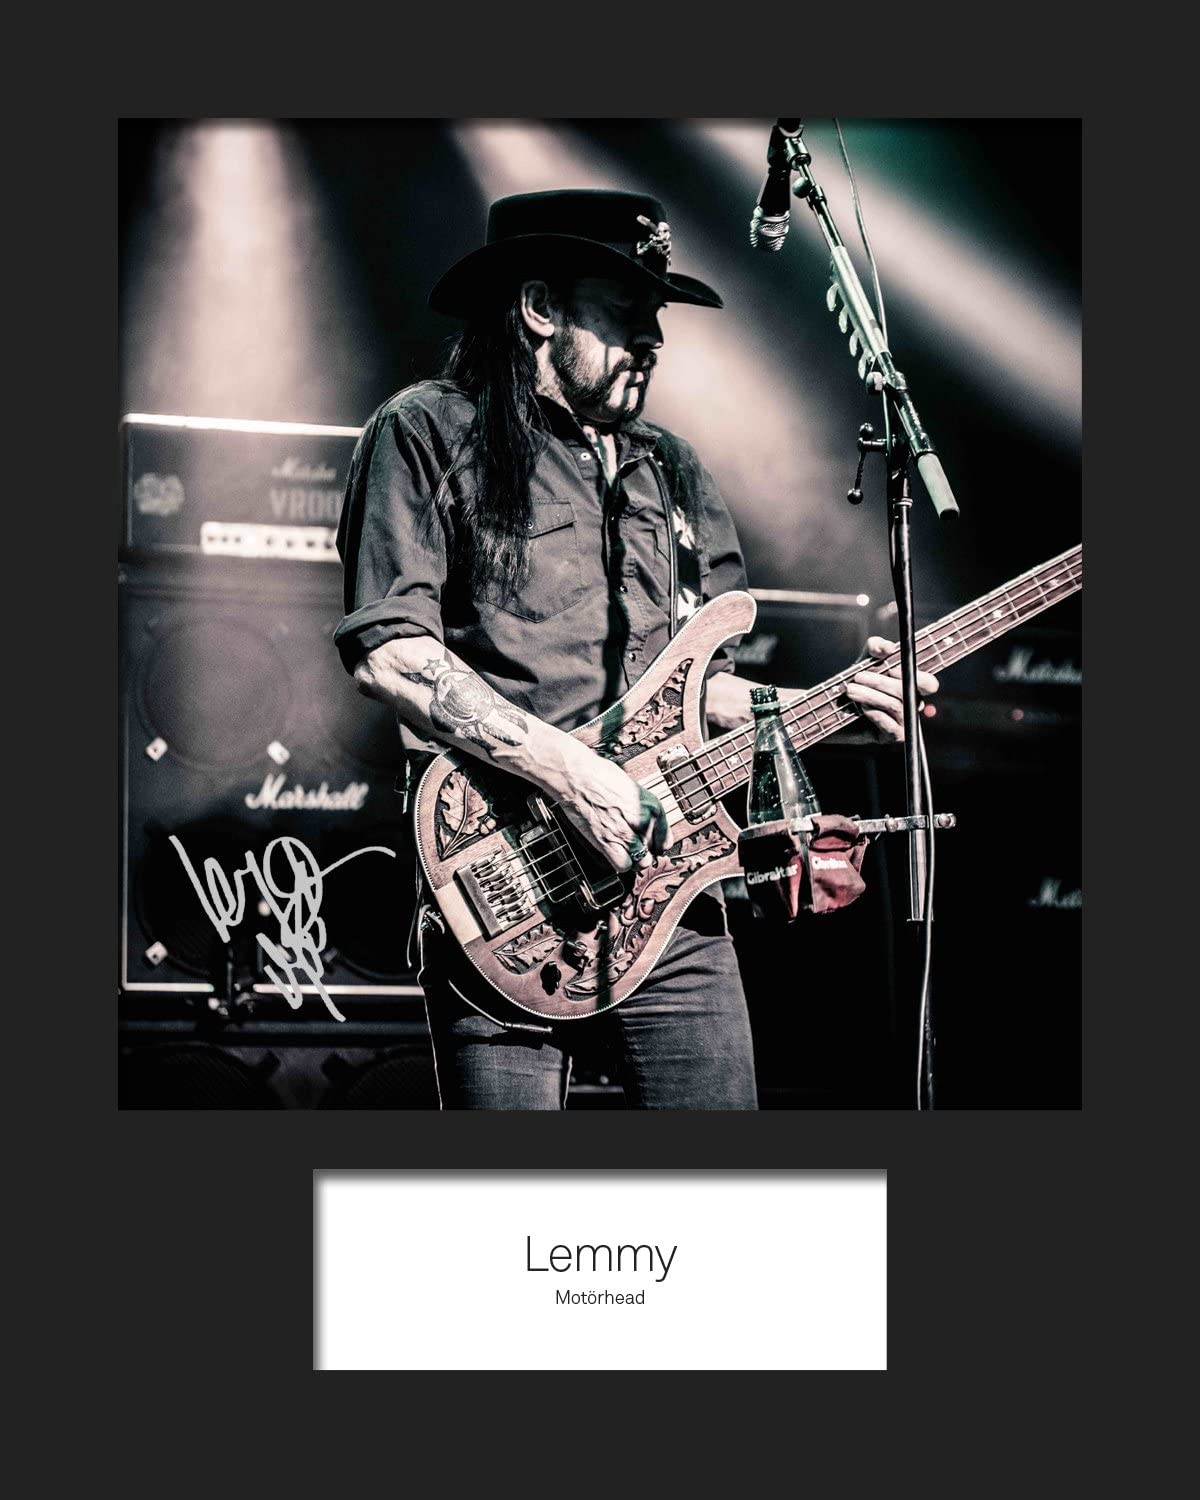 10x8 Size to Fit 10x8 Inch Frames LEMMY #2 Machine Cut Signed Mounted Photo Reprint Present Gift Collectible Photo Display MOTORHEAD